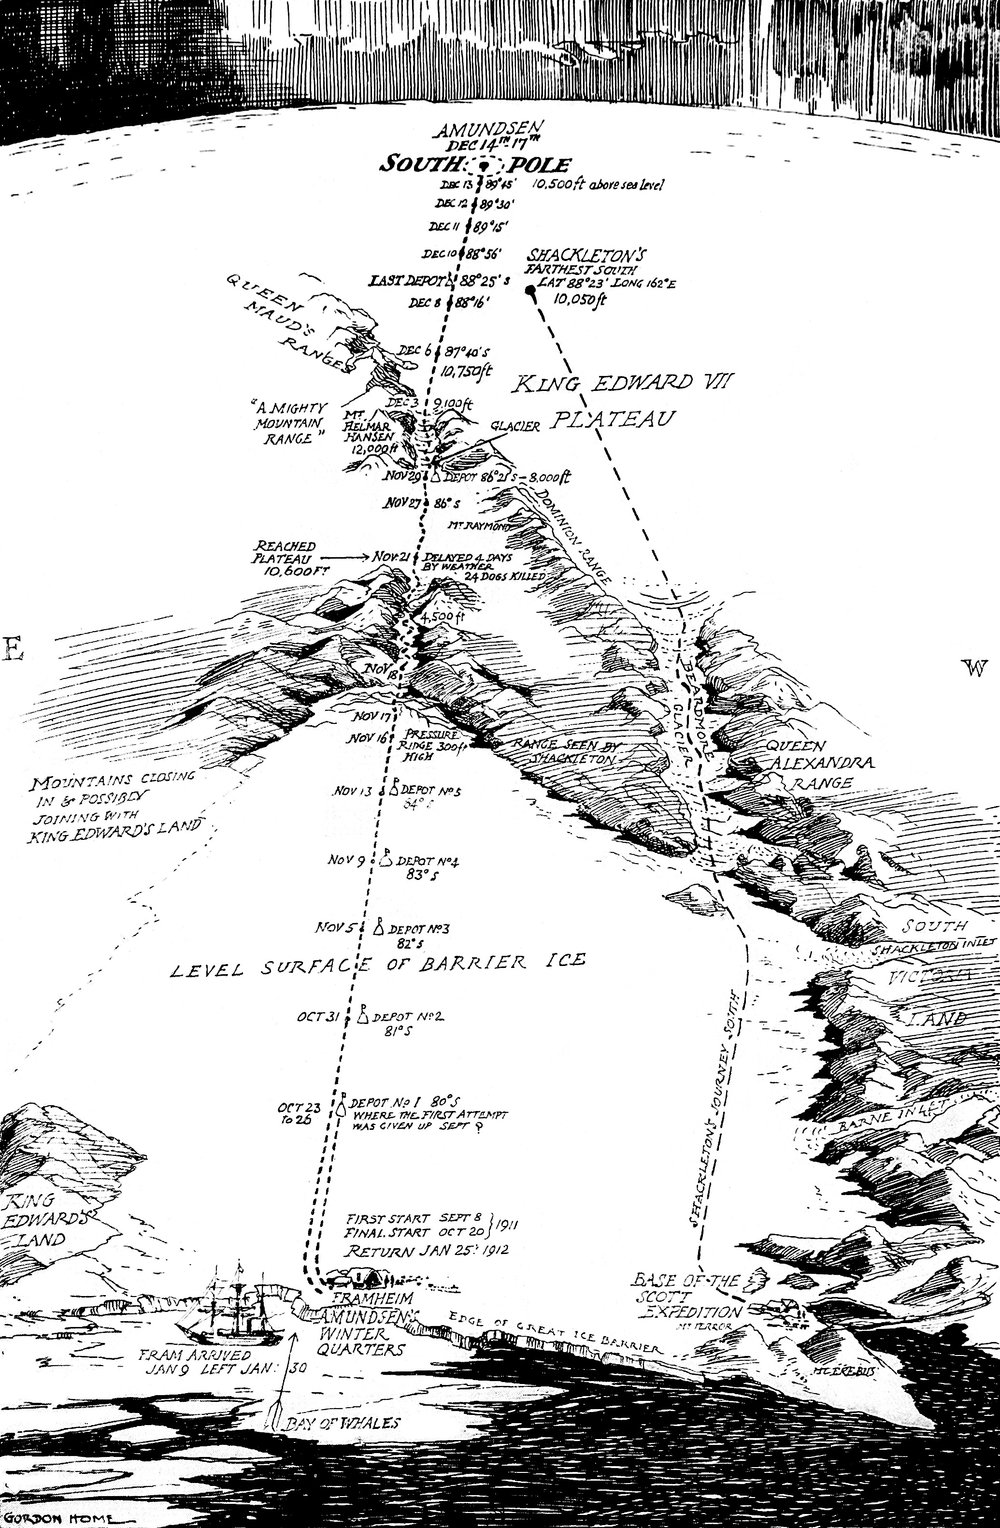 Approximate Bird's-Eye View, Drawn from the First Telegraphic Account: Map of Roald Amundsen's South Pole Expedition